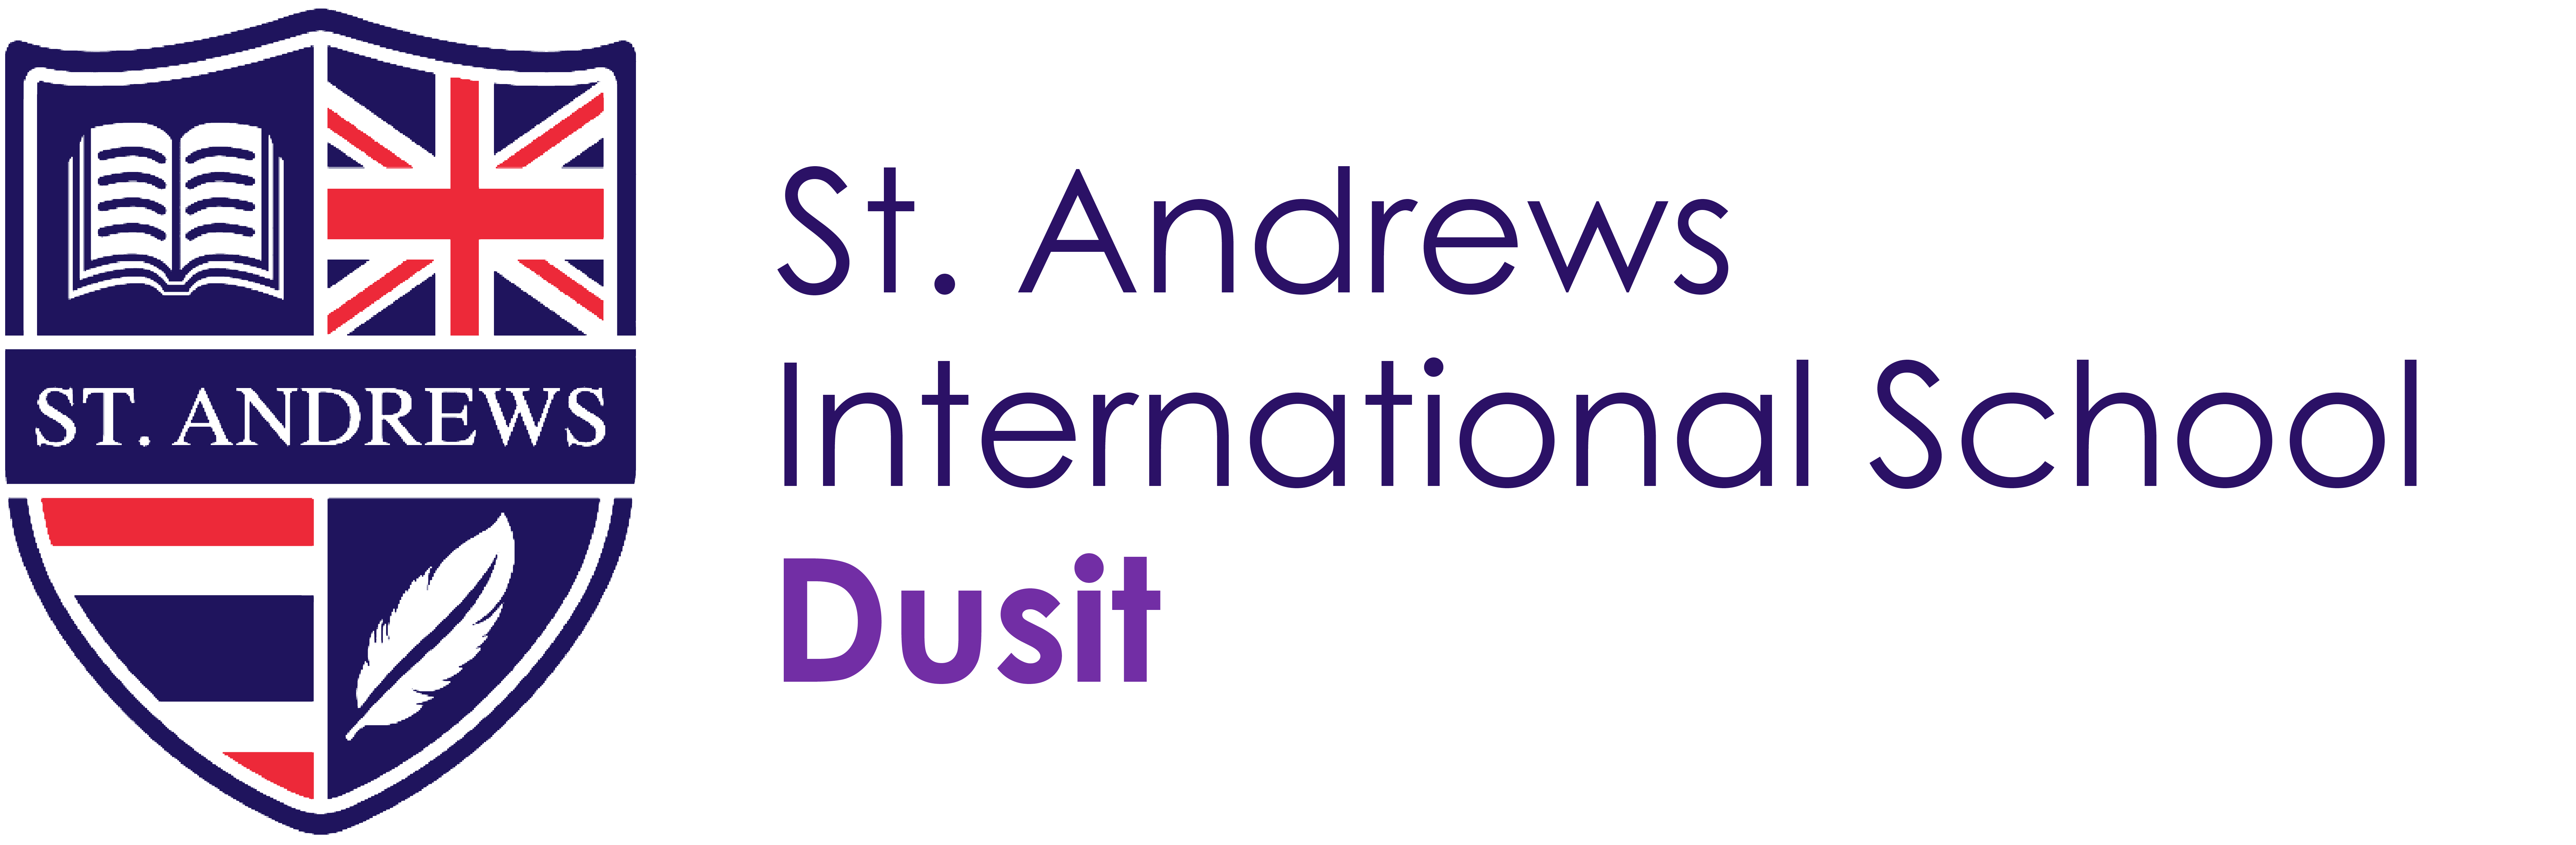 St. Andrews International School – Dusit